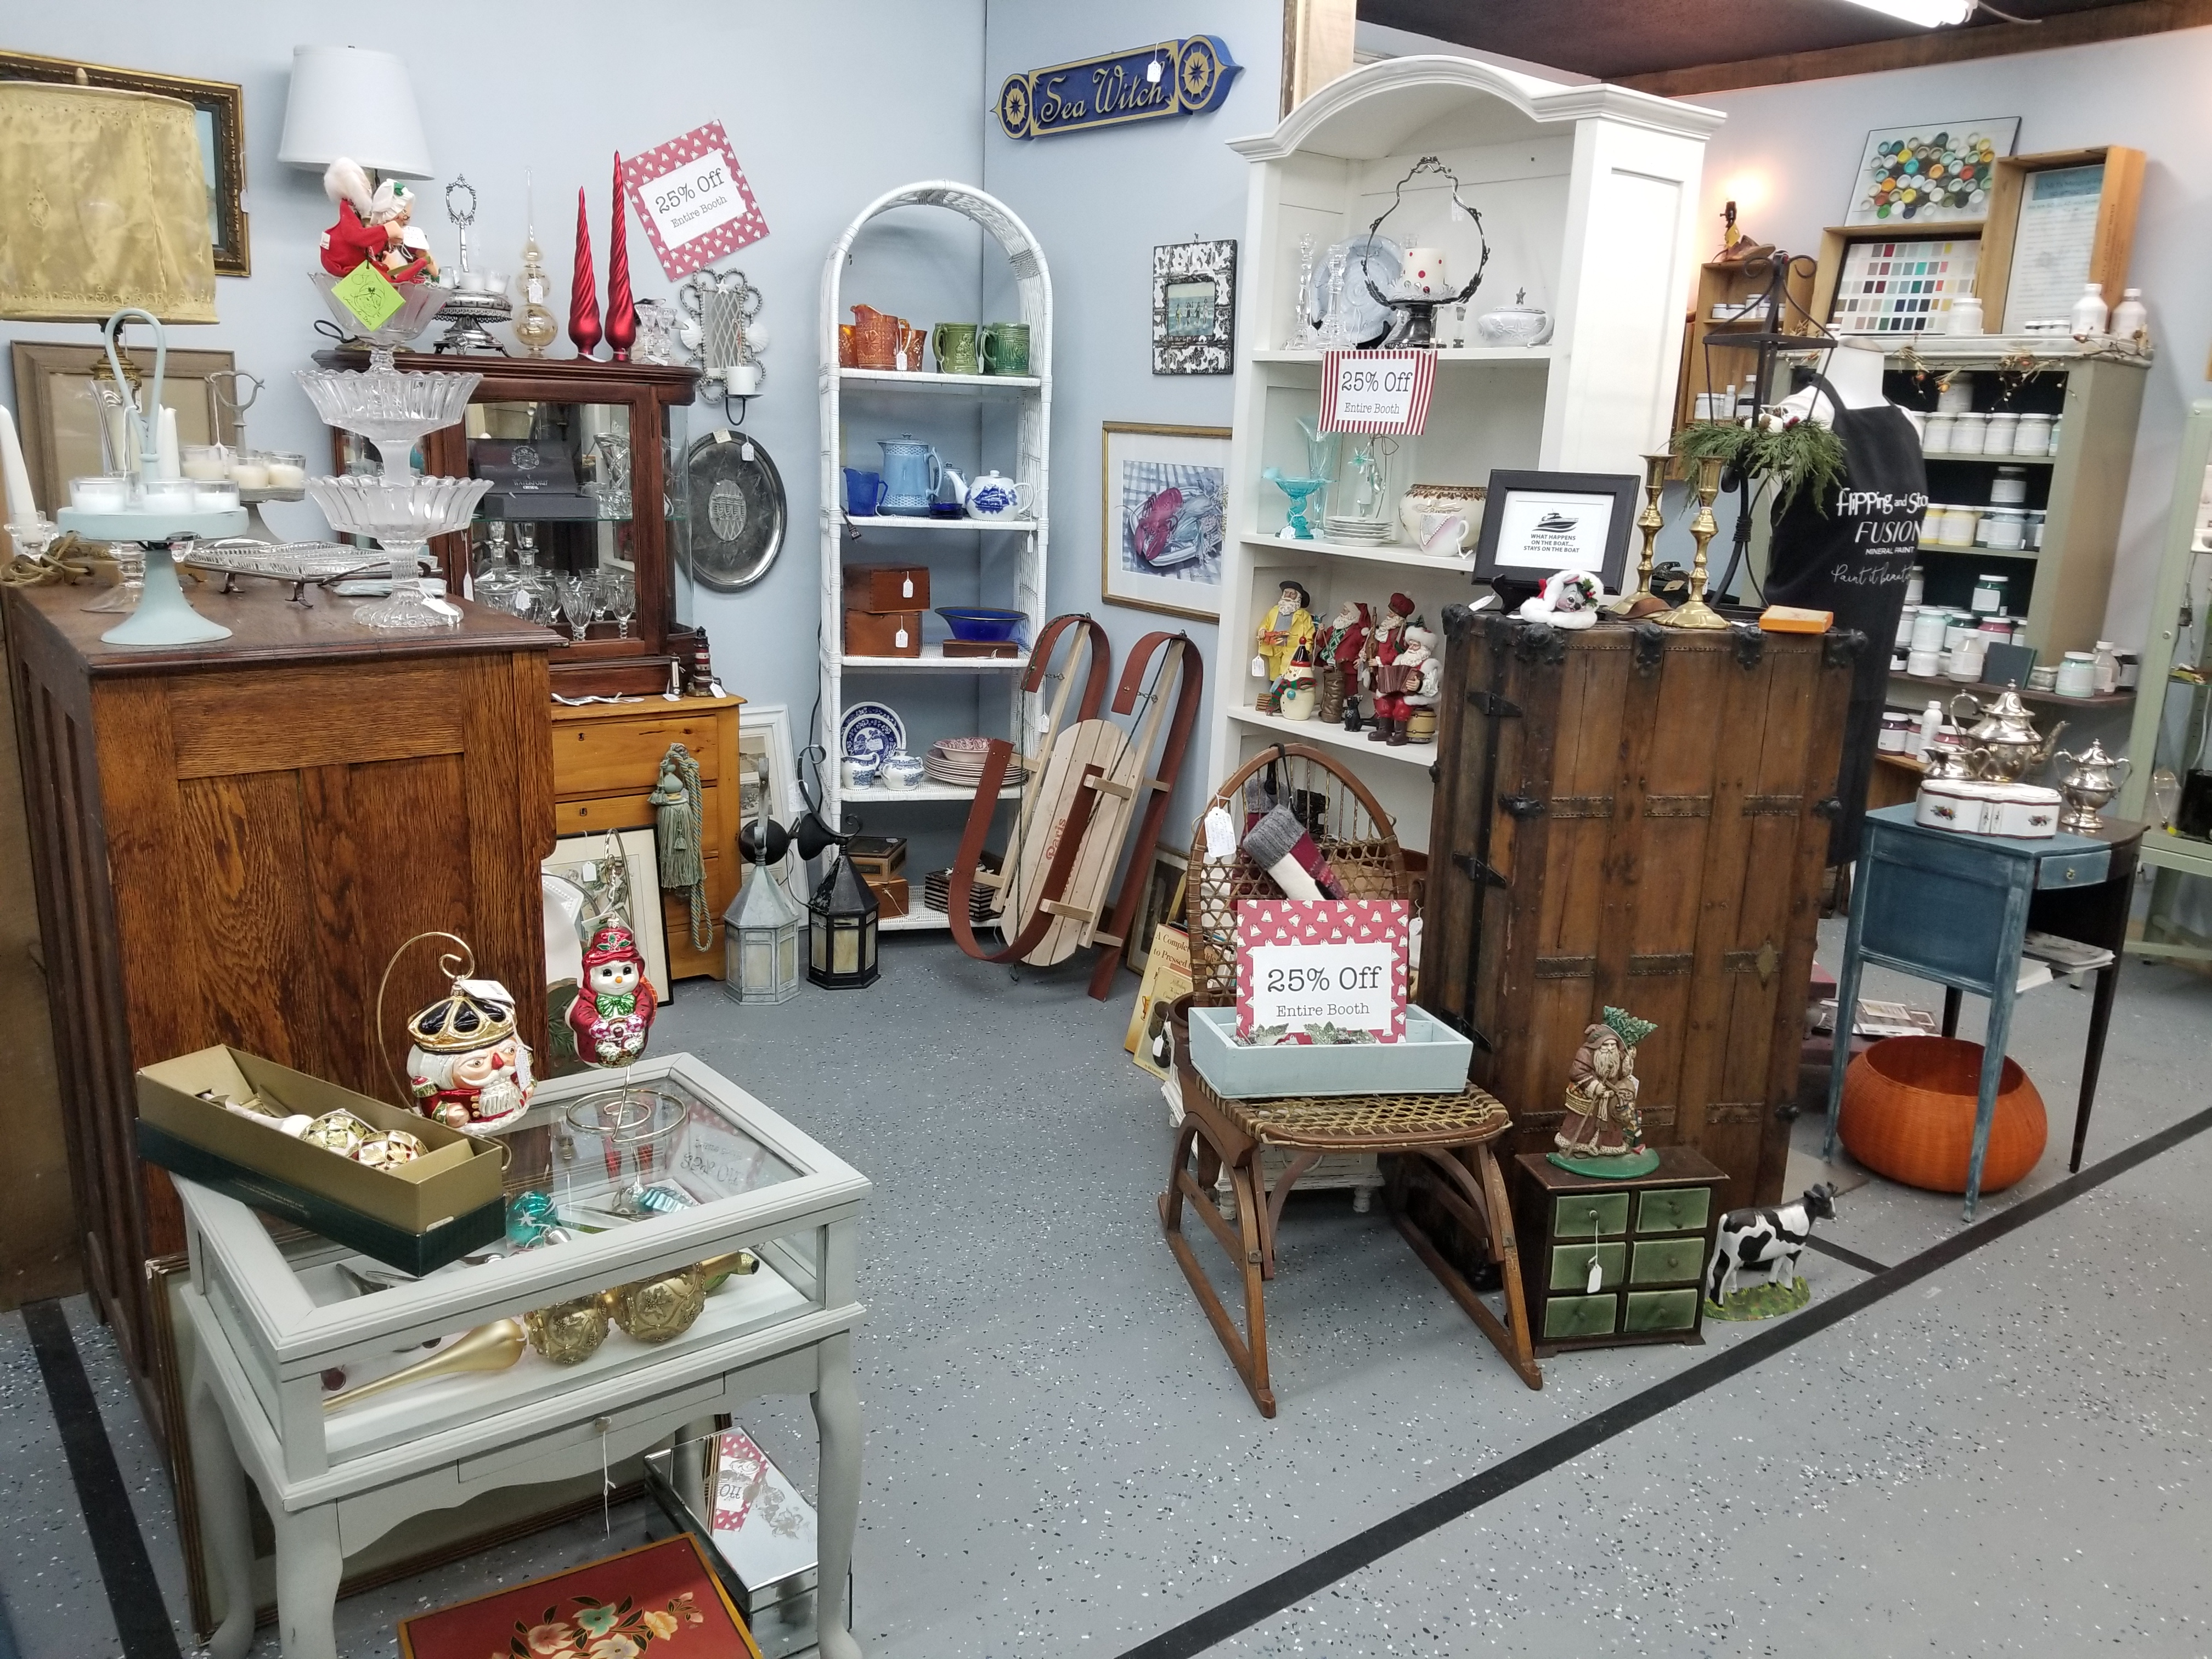 Booth A10 - Clinton Store